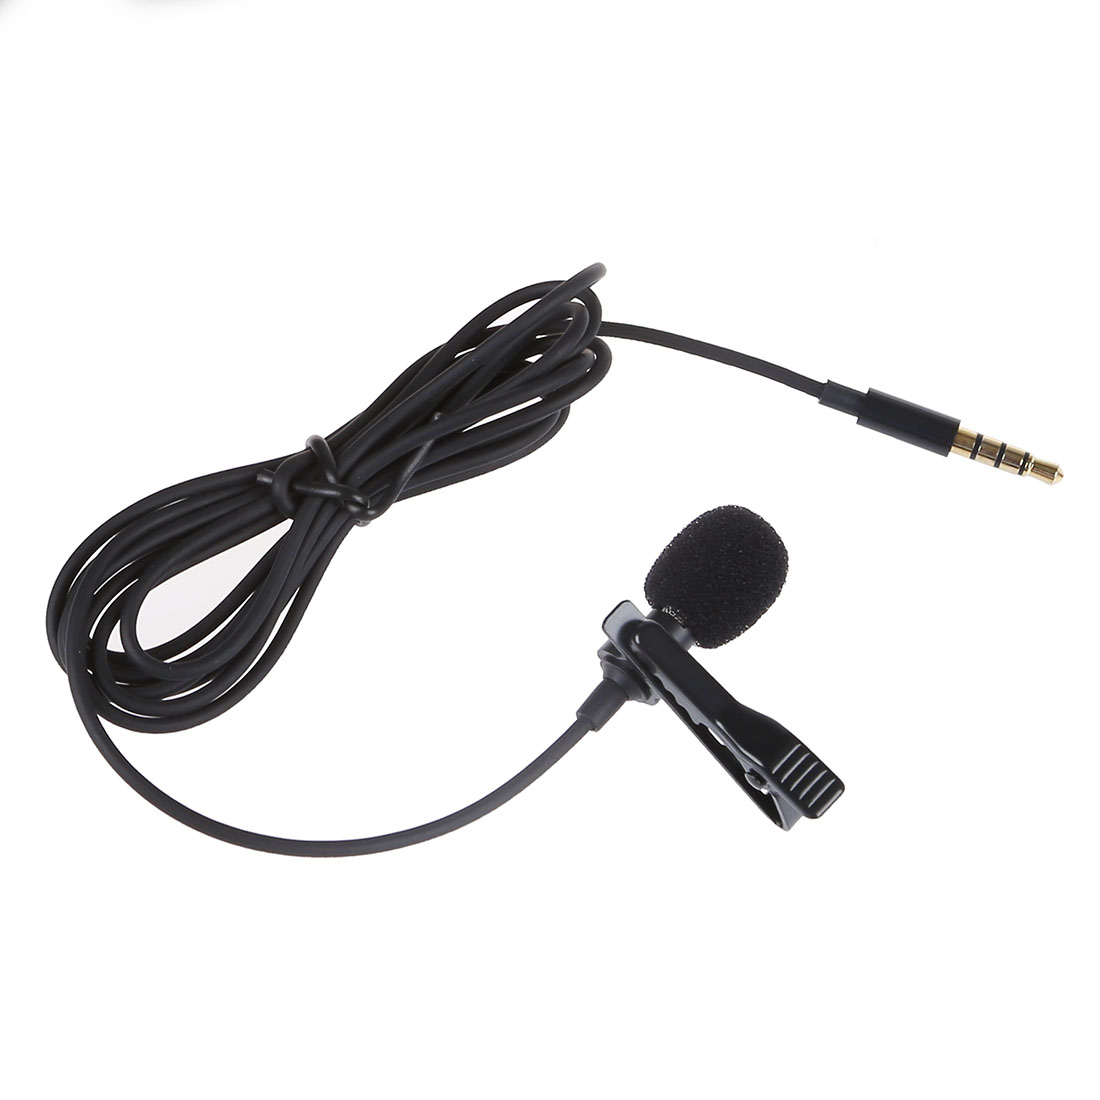 Cravate Revers Clip-sur Microphone Omnidirectionnel TRRS 3.5mm Jack Mains Libres 3.28ft Condenseur Mini Enregistrement Mic pour Apple iPhone